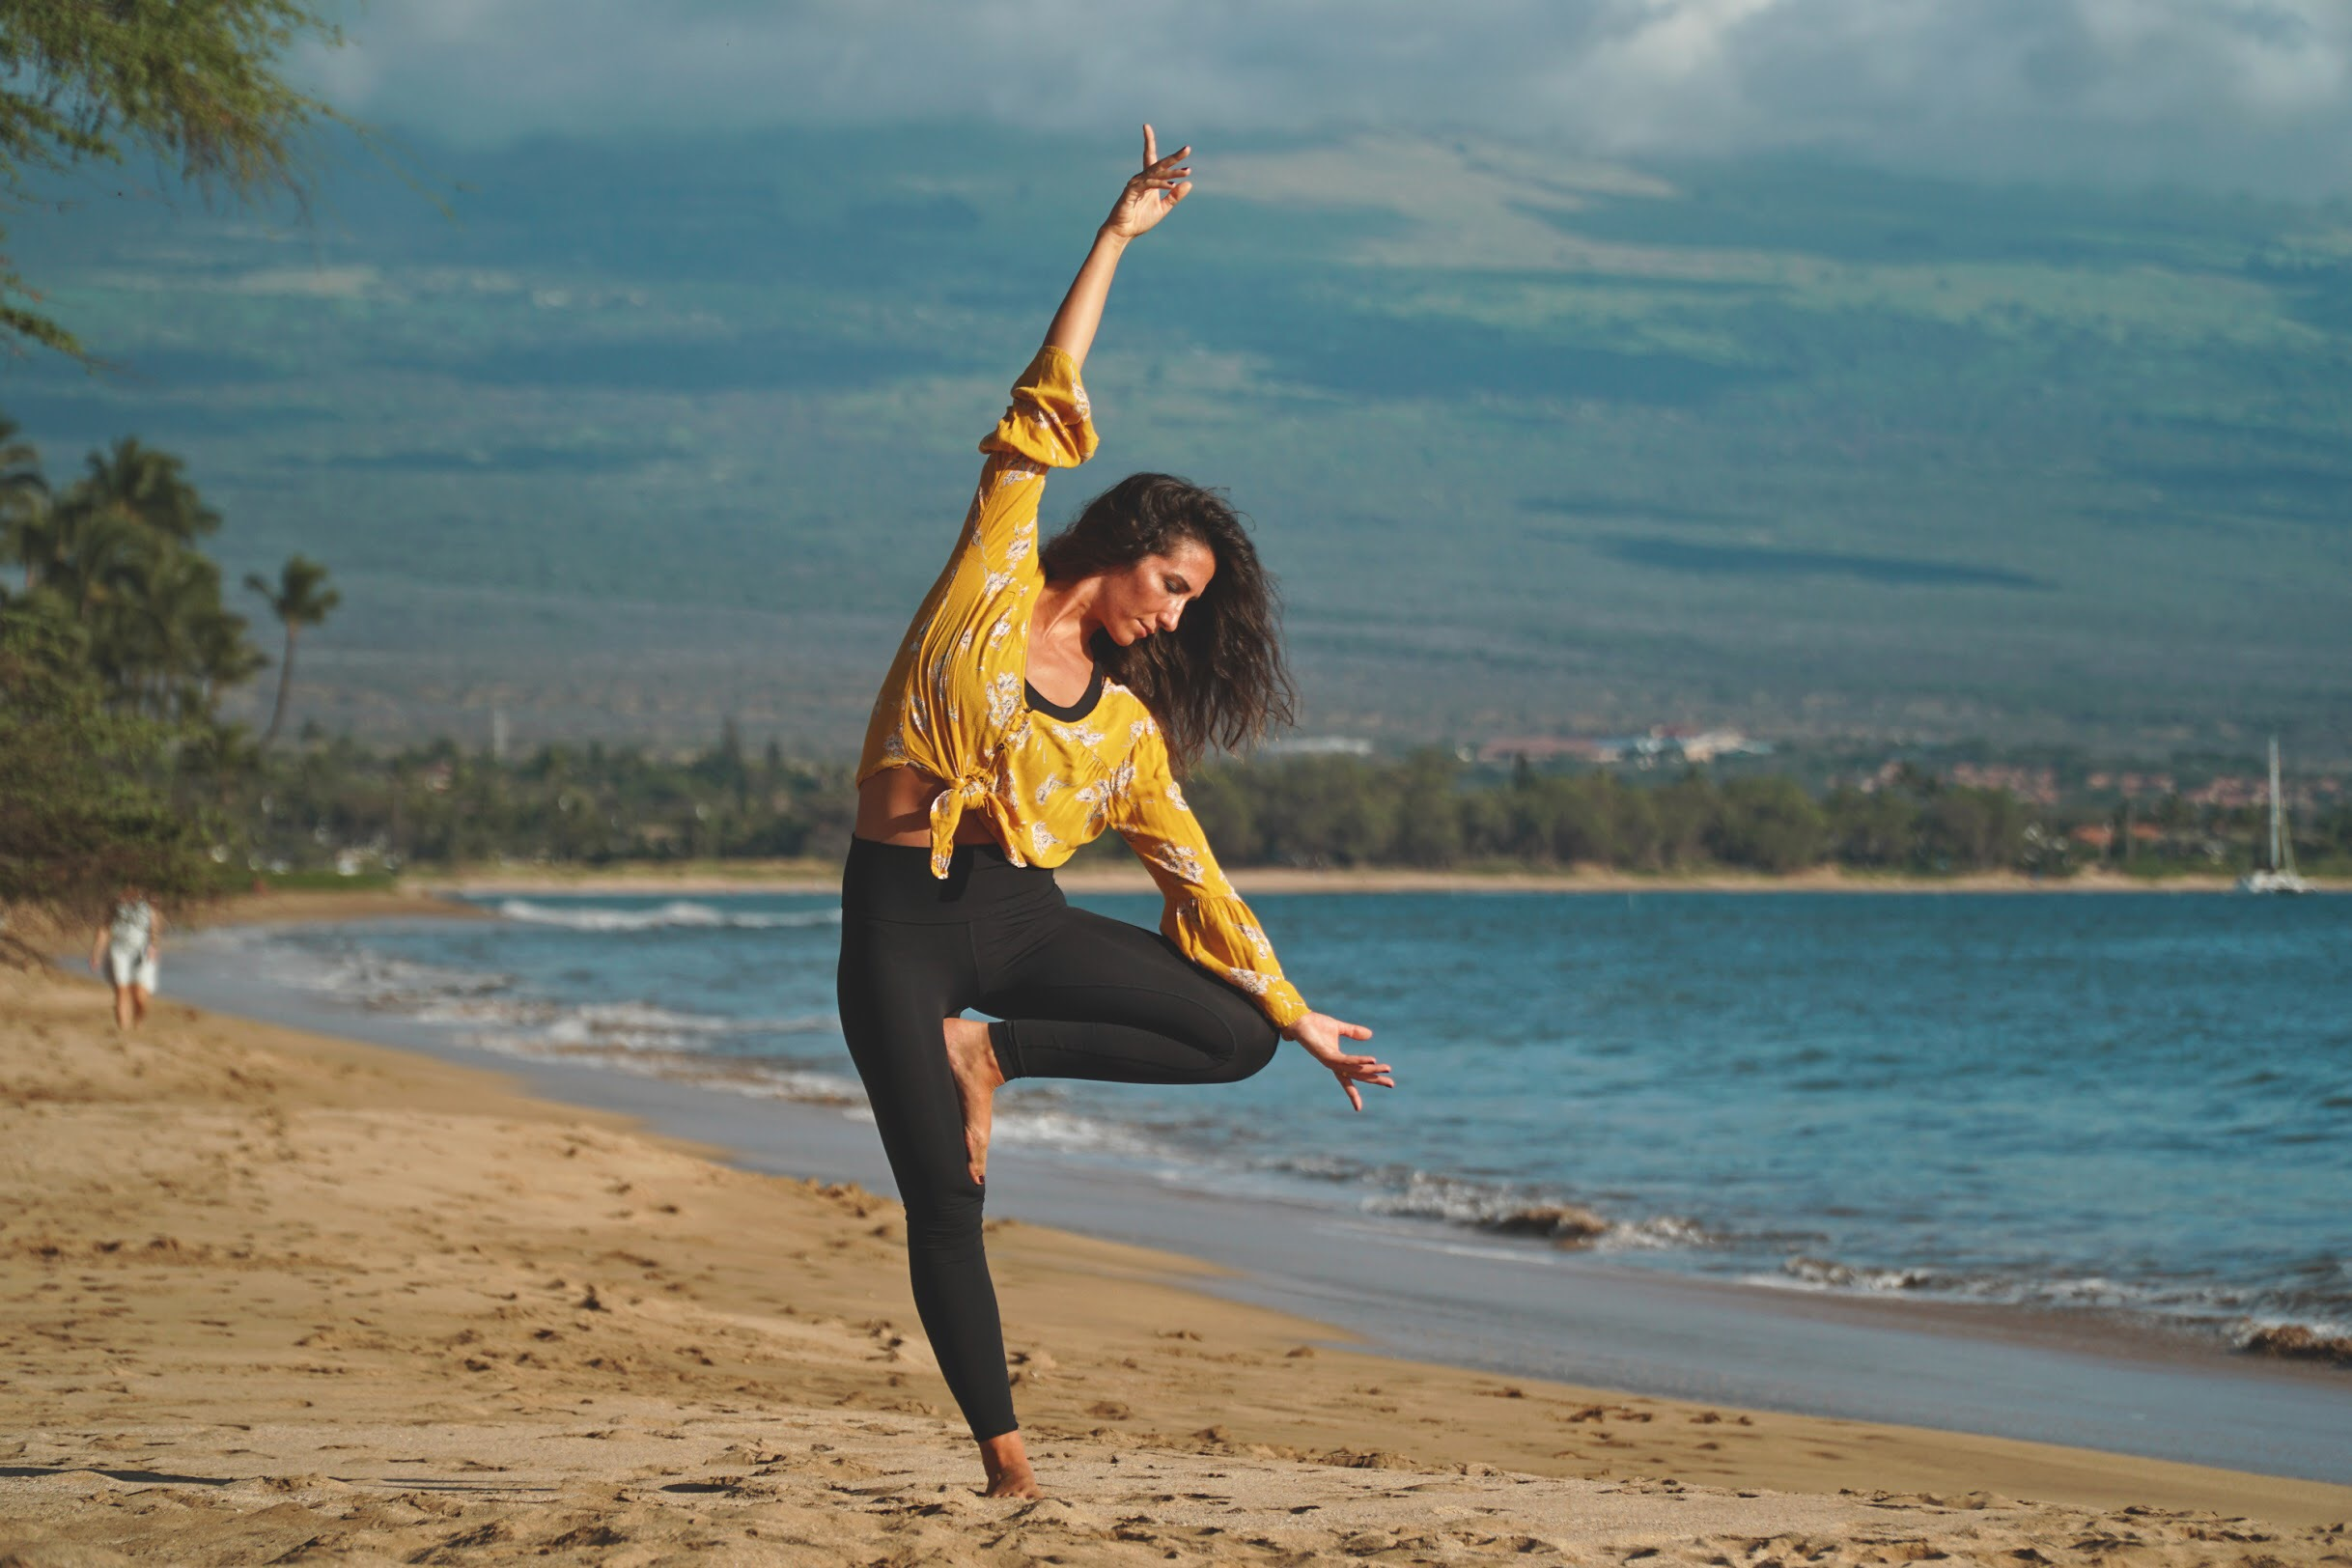 How Can One Find A Yoga Teaching Job While Travelling